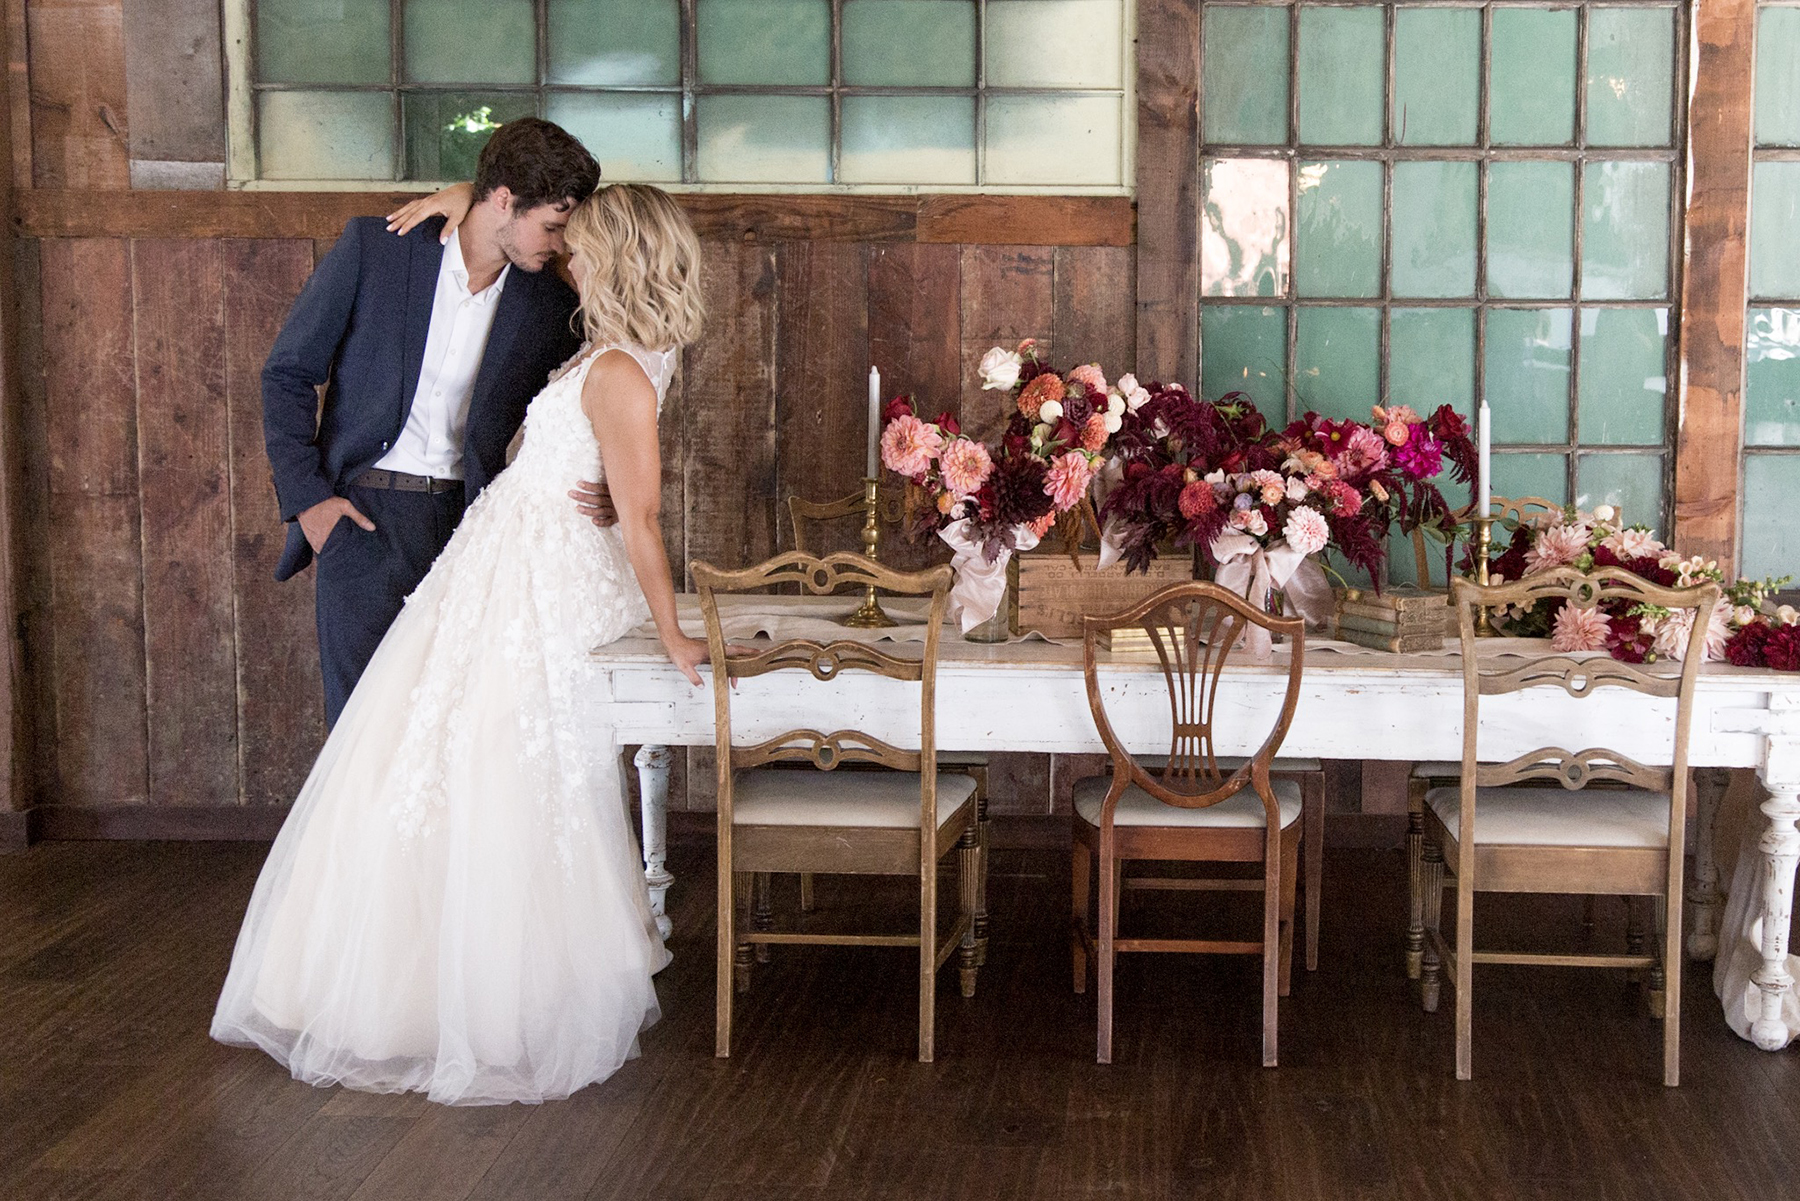 Vintage Wedding Style in an Industrial Space - Photography: Szu Designs, Inc